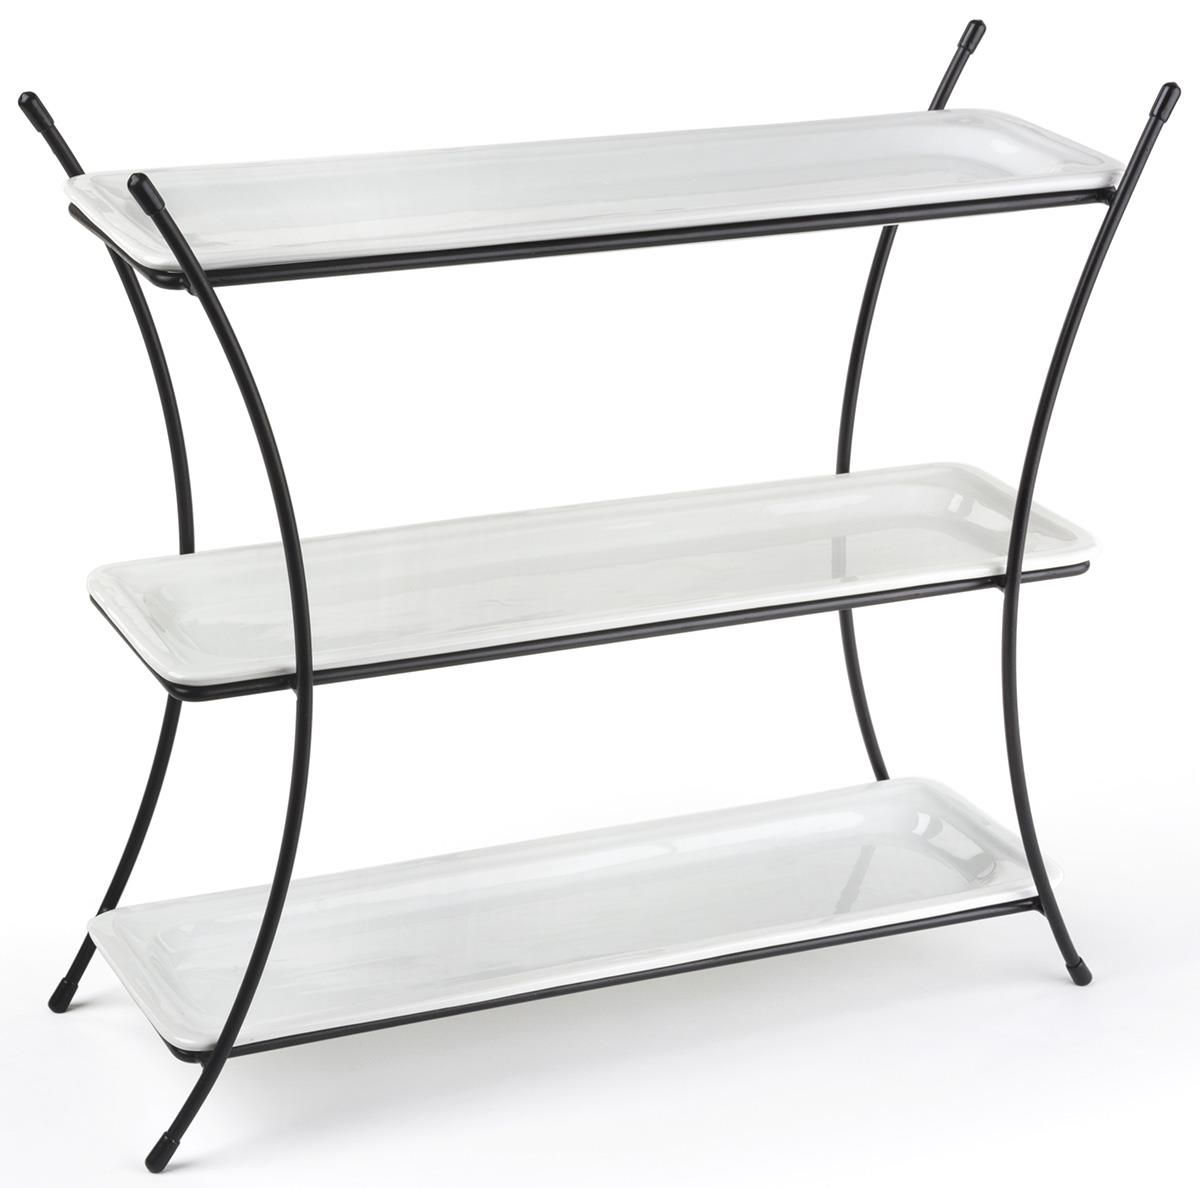 3 Tier Serving Tray Buffet Serving Stand With Porcelain Dishes